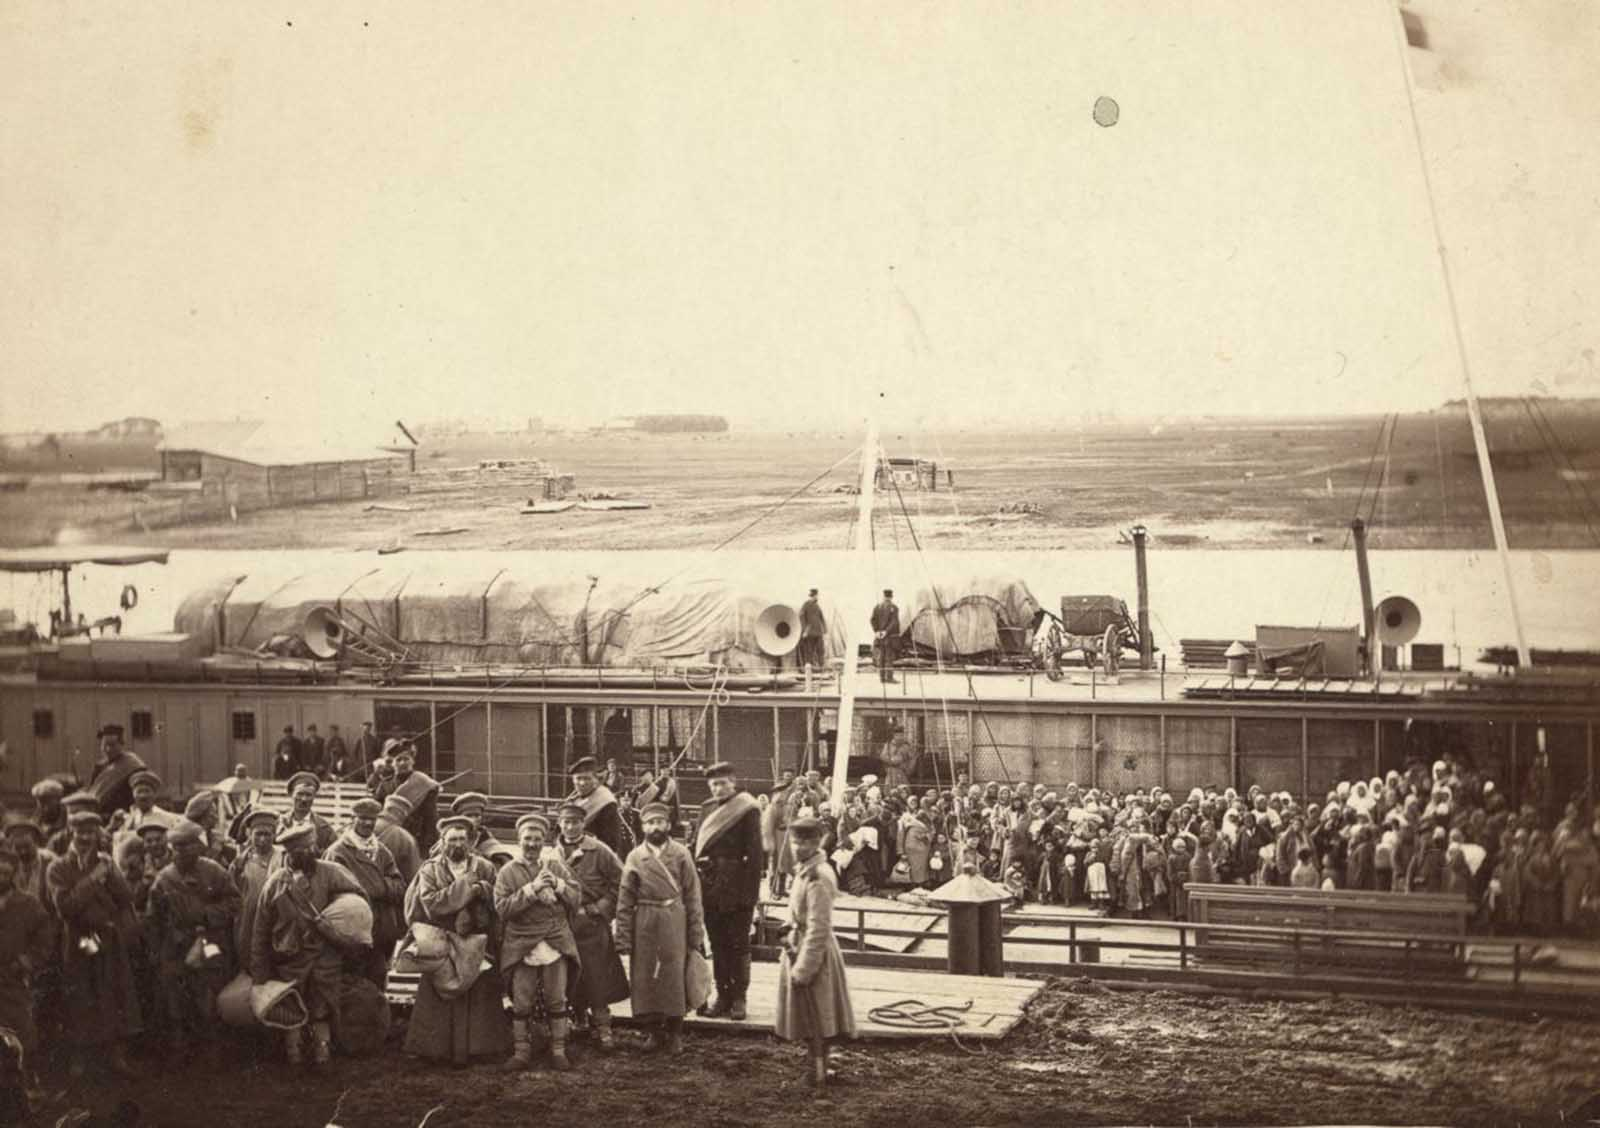 Exiles and convicts wait at Tyumen wait to board a prison barge for Tomsk. Many are joined voluntarily by their wives and children.